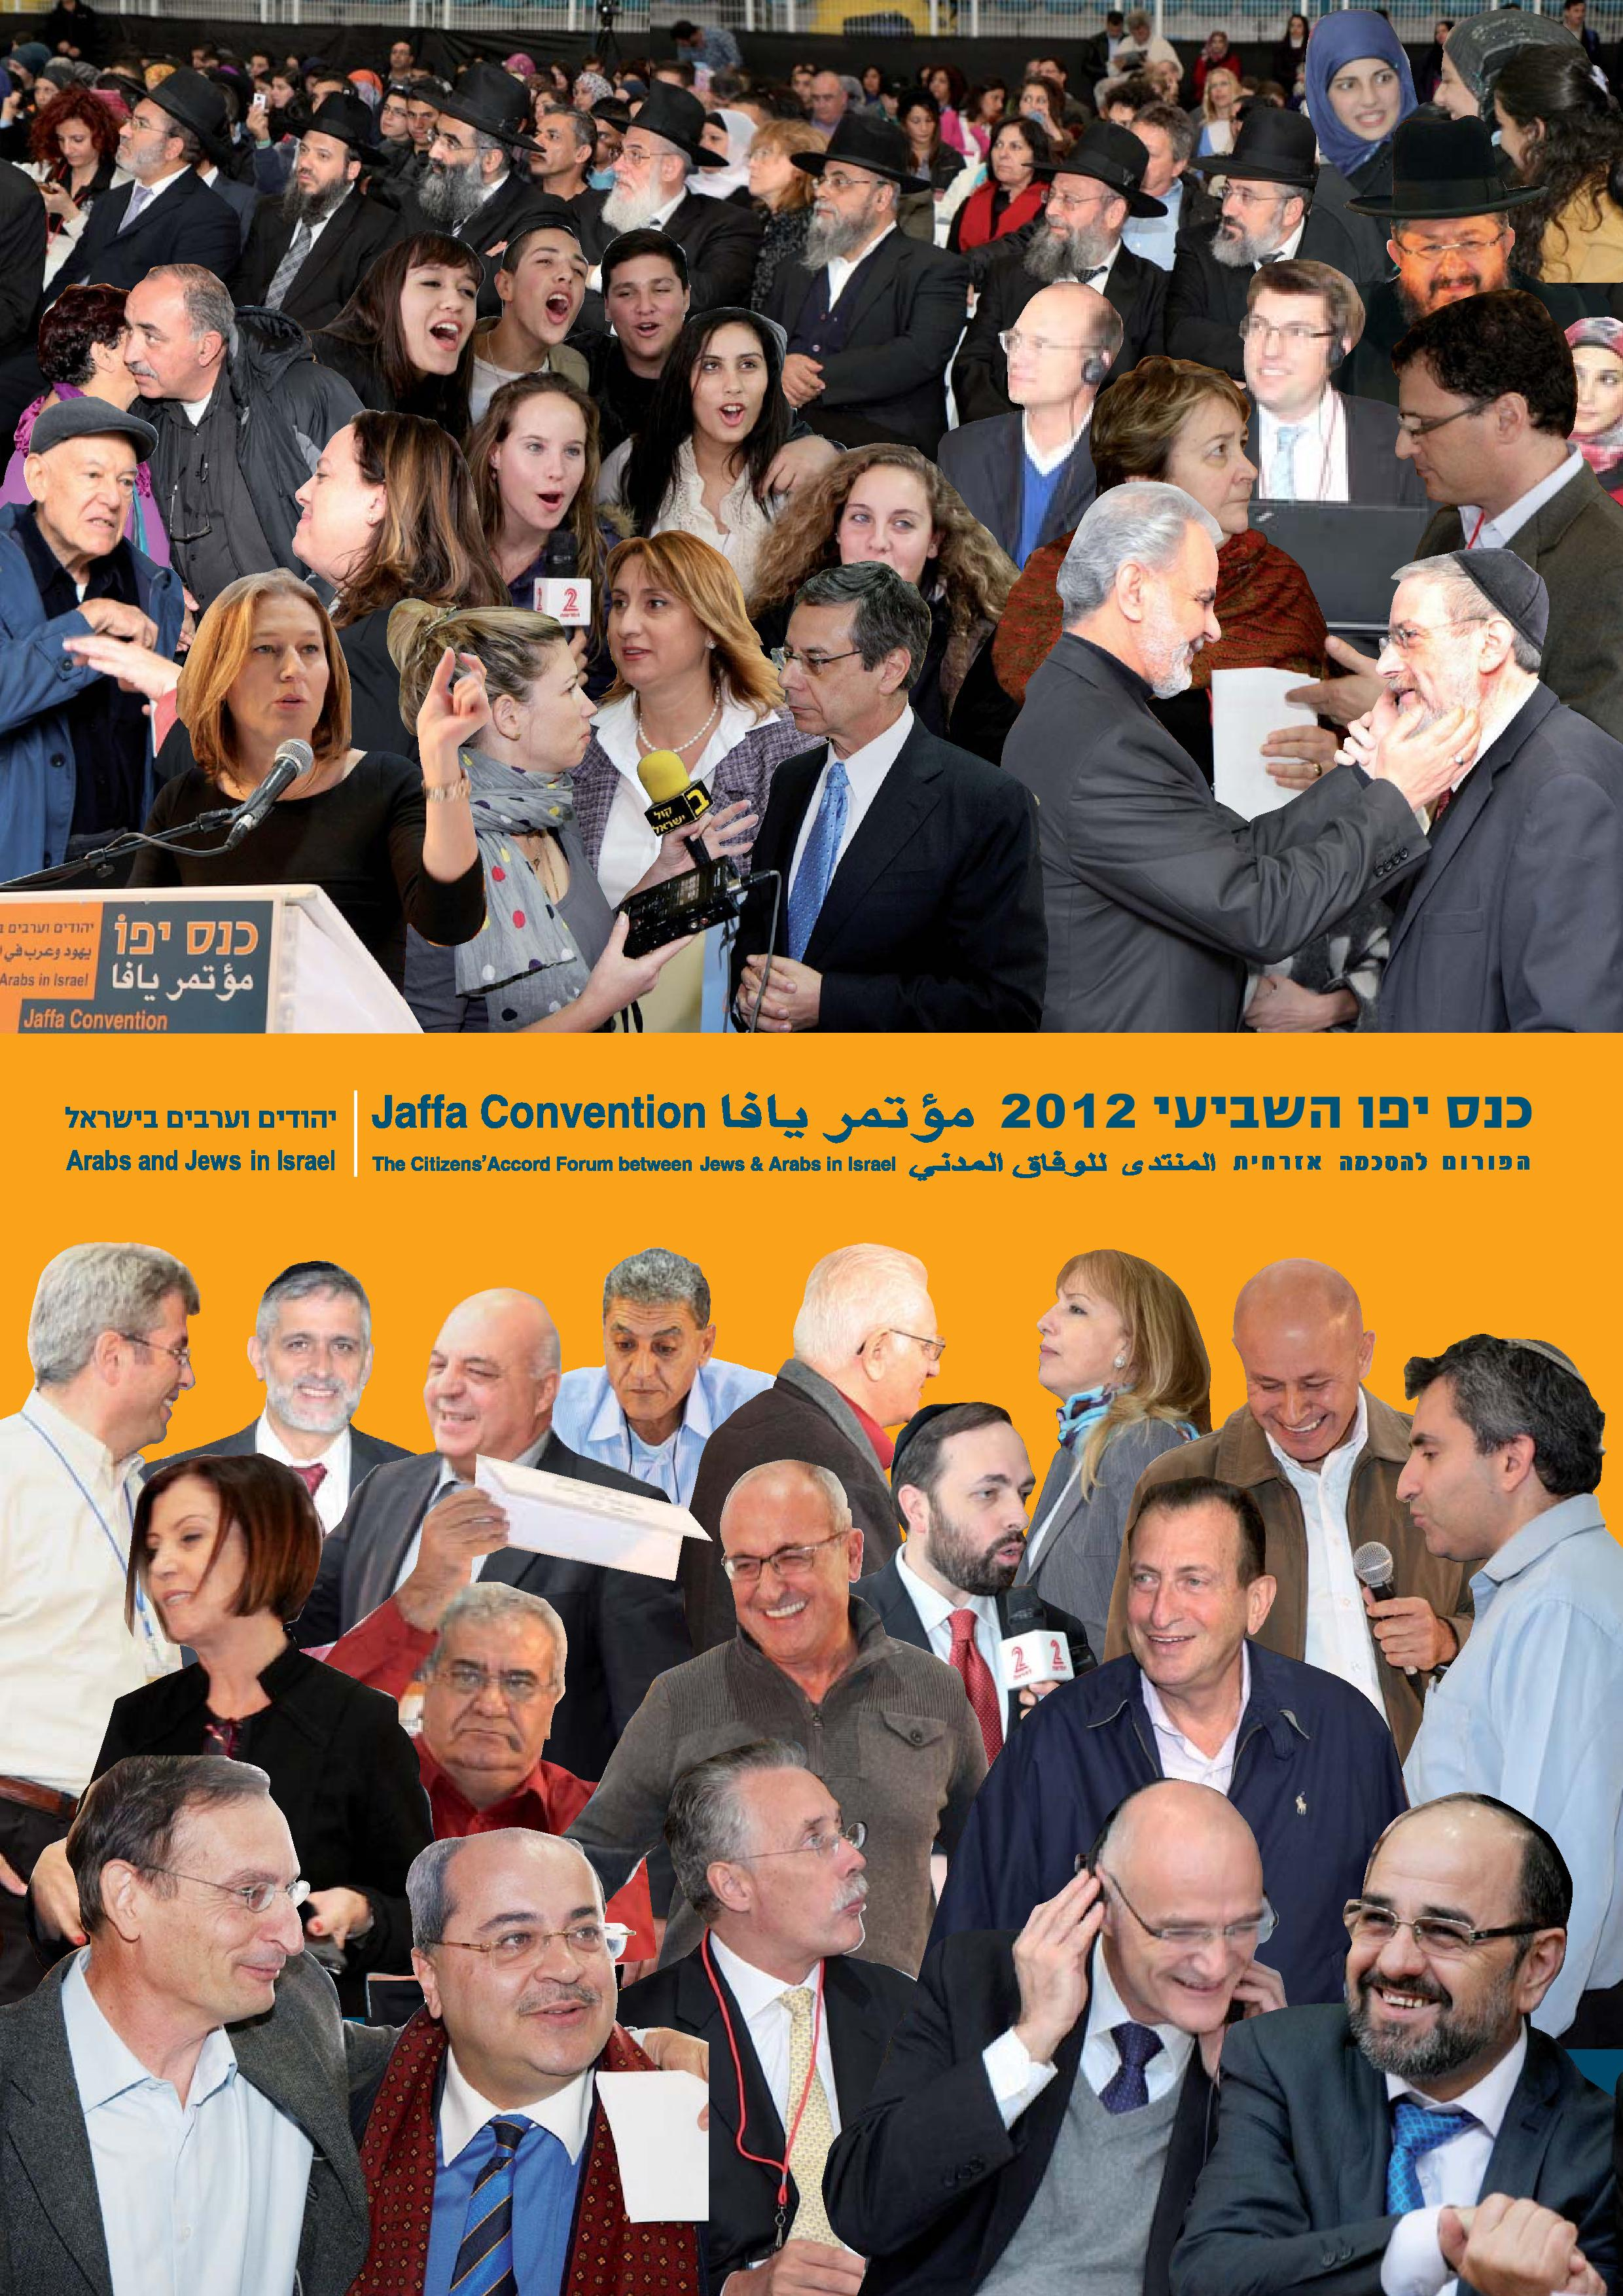 2012 Jaffa Convention.jpg